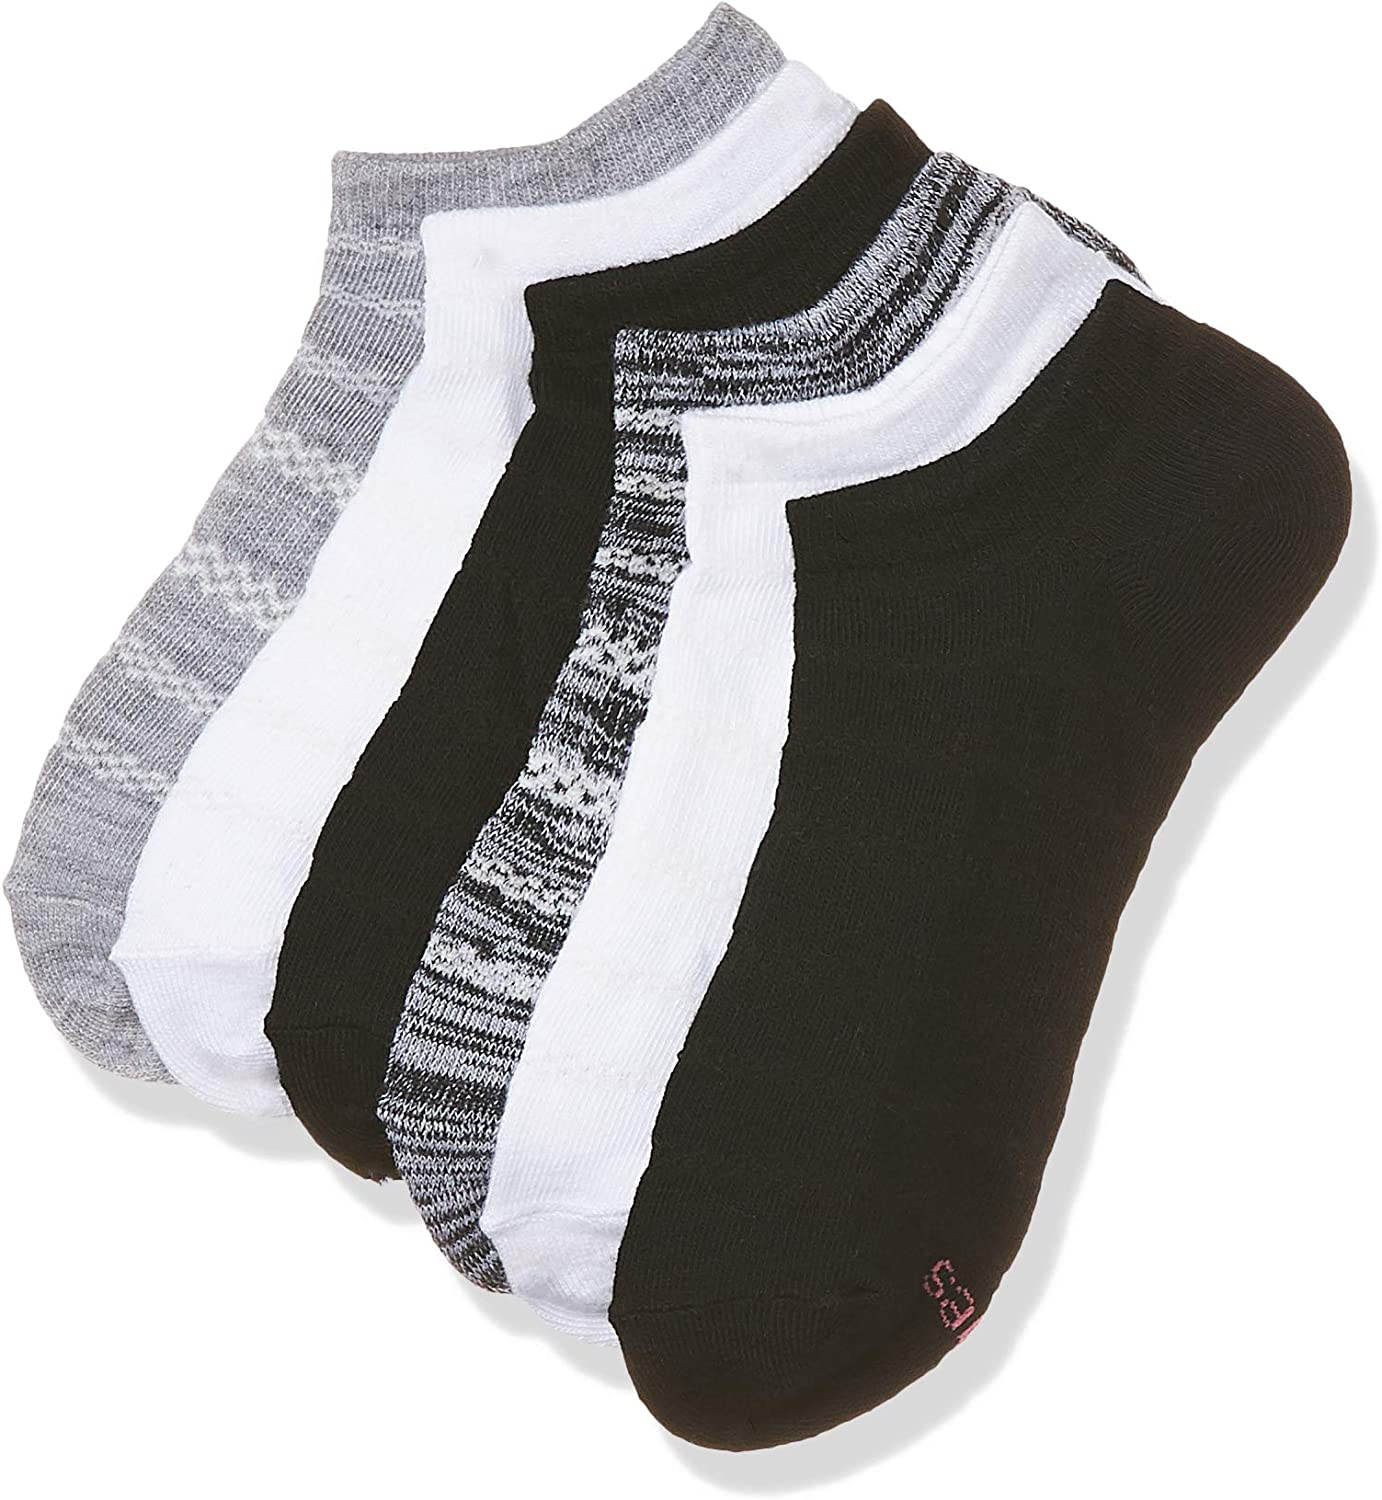 Hanes womens Lightweight Breathable Super No Show Socks 6 Pair Pack